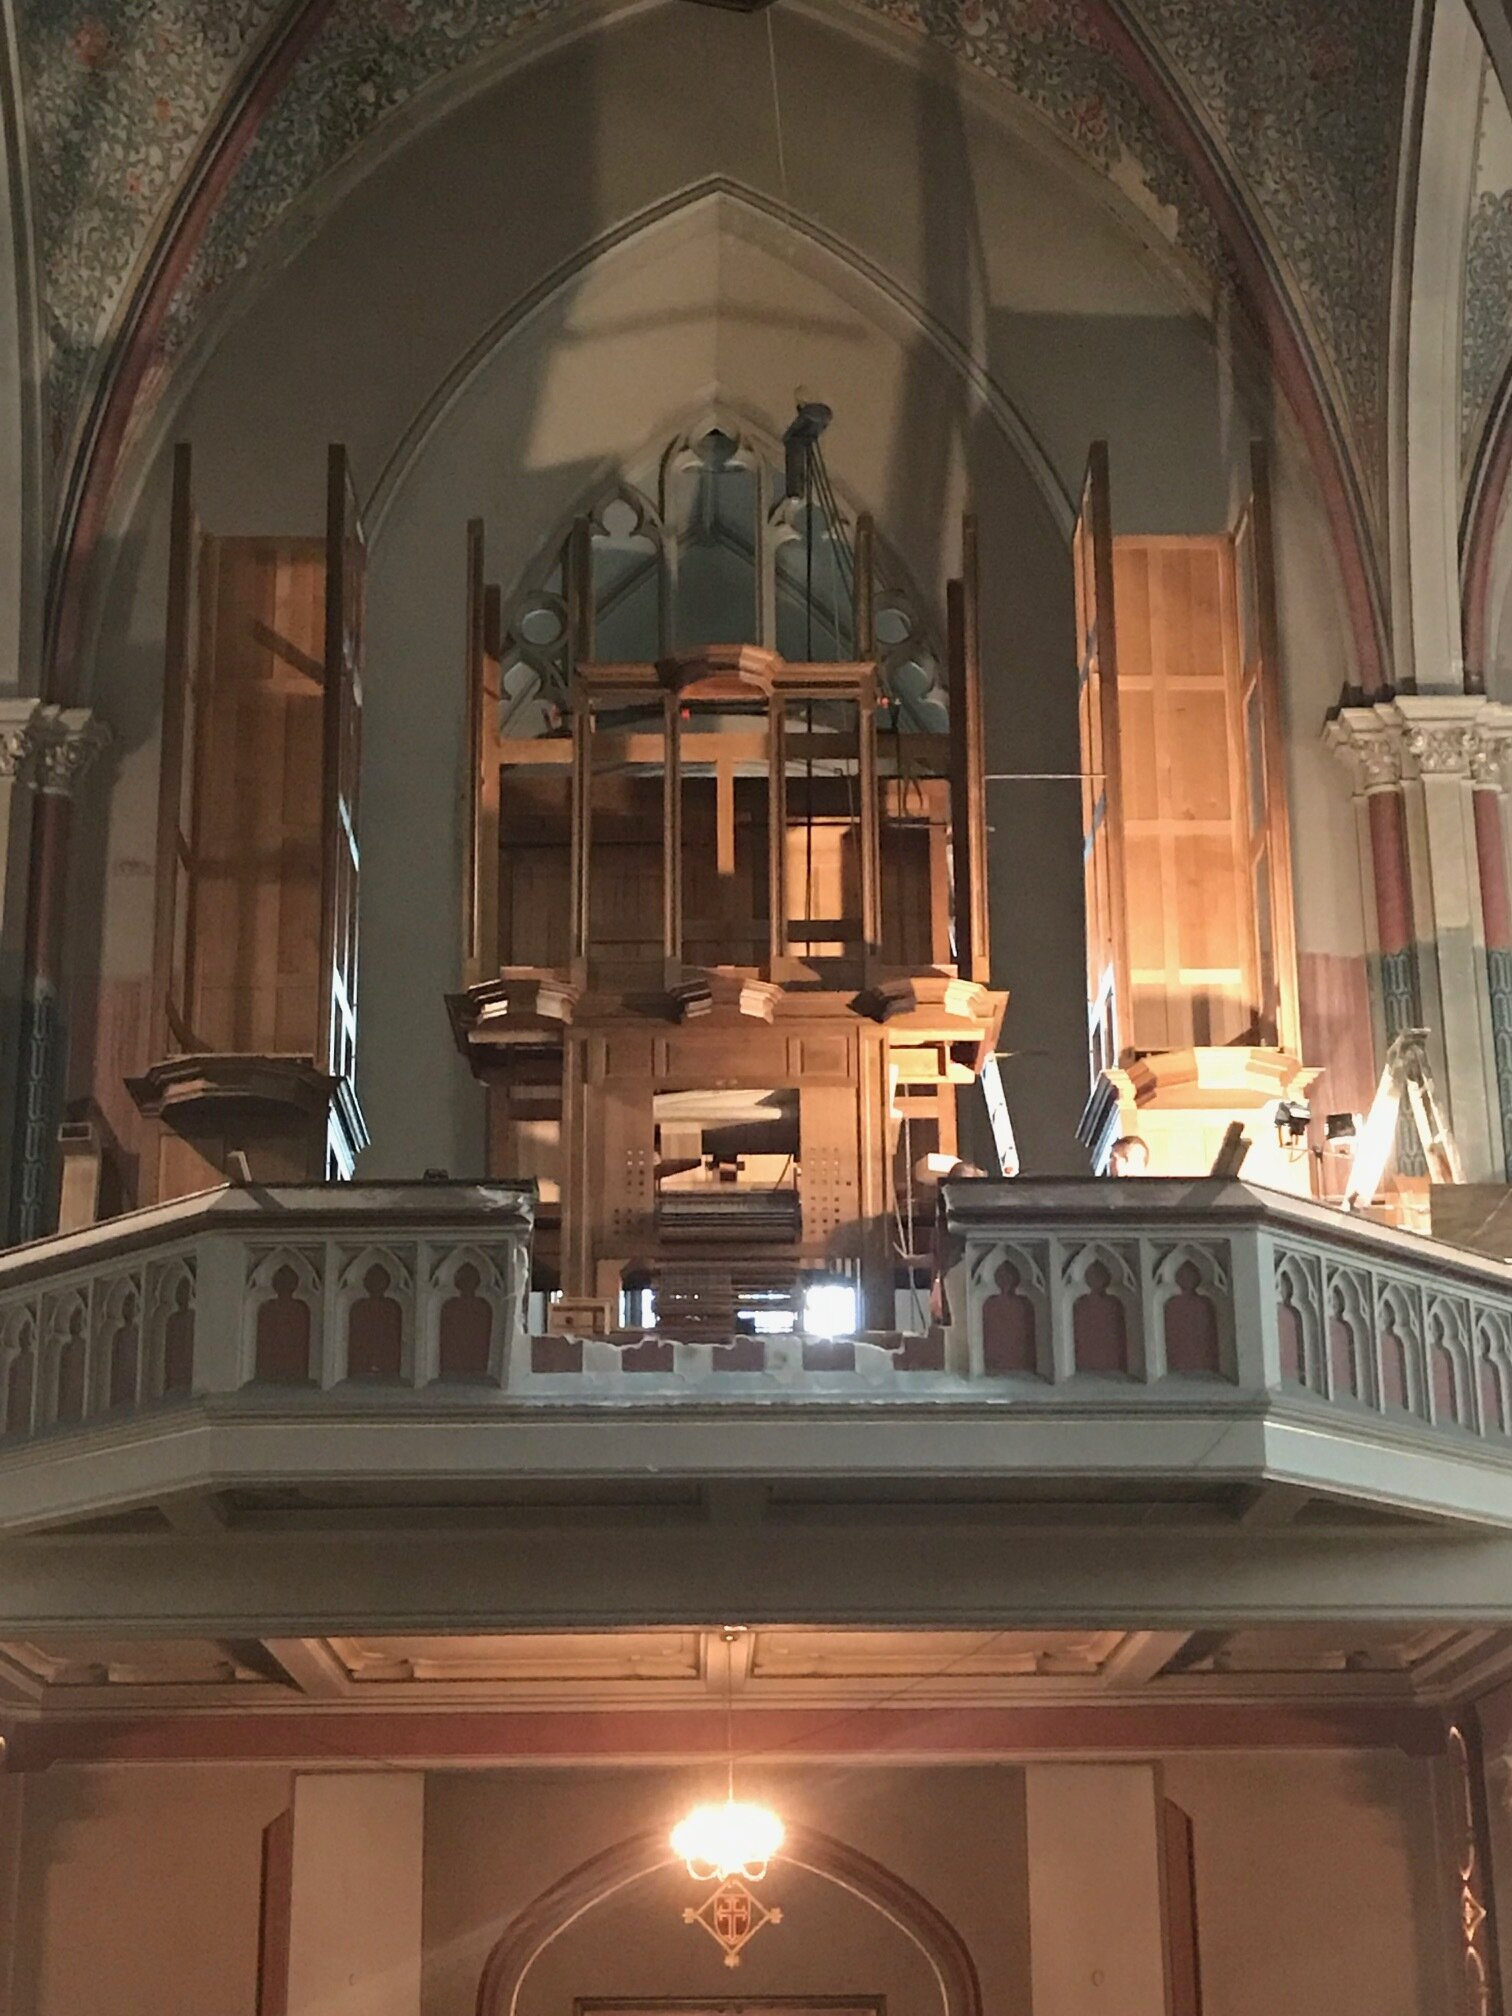 Installation of the new Wilhelm organ in progress